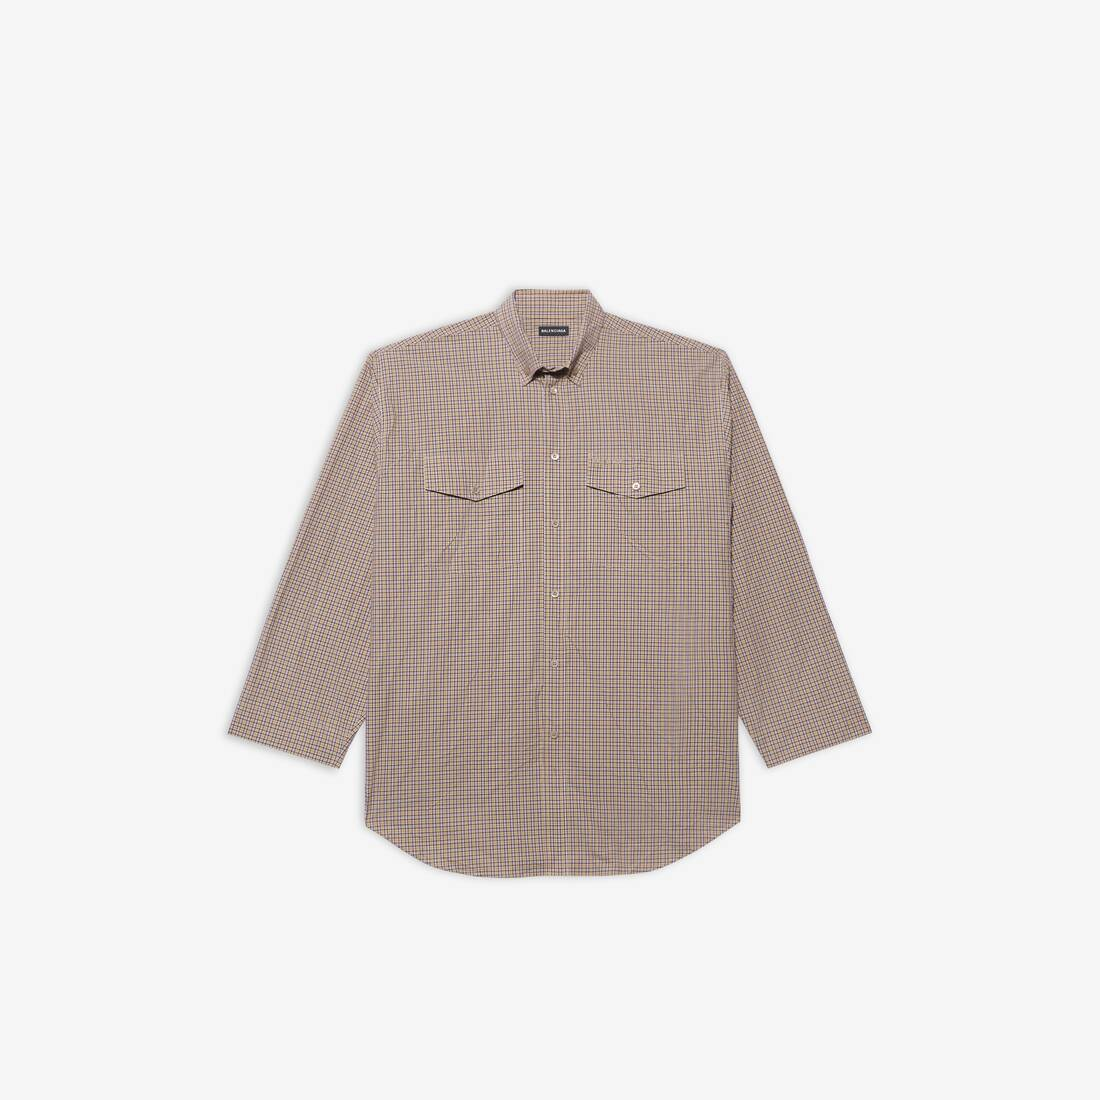 Display zoomed version of oversize button-down shirt 1